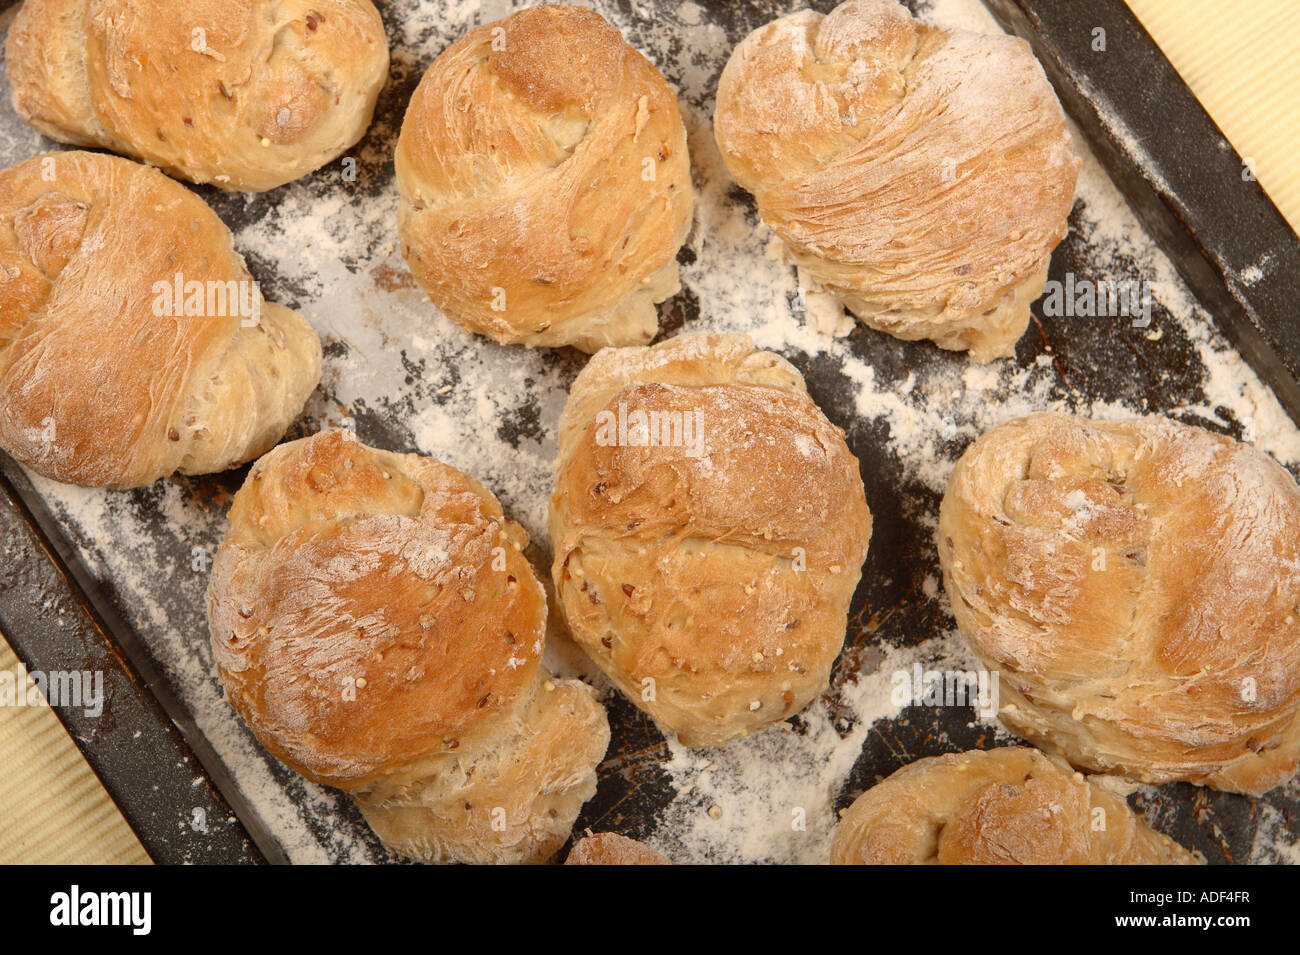 Home cooking fresh baked bread rolls on baking tray - Stock Image